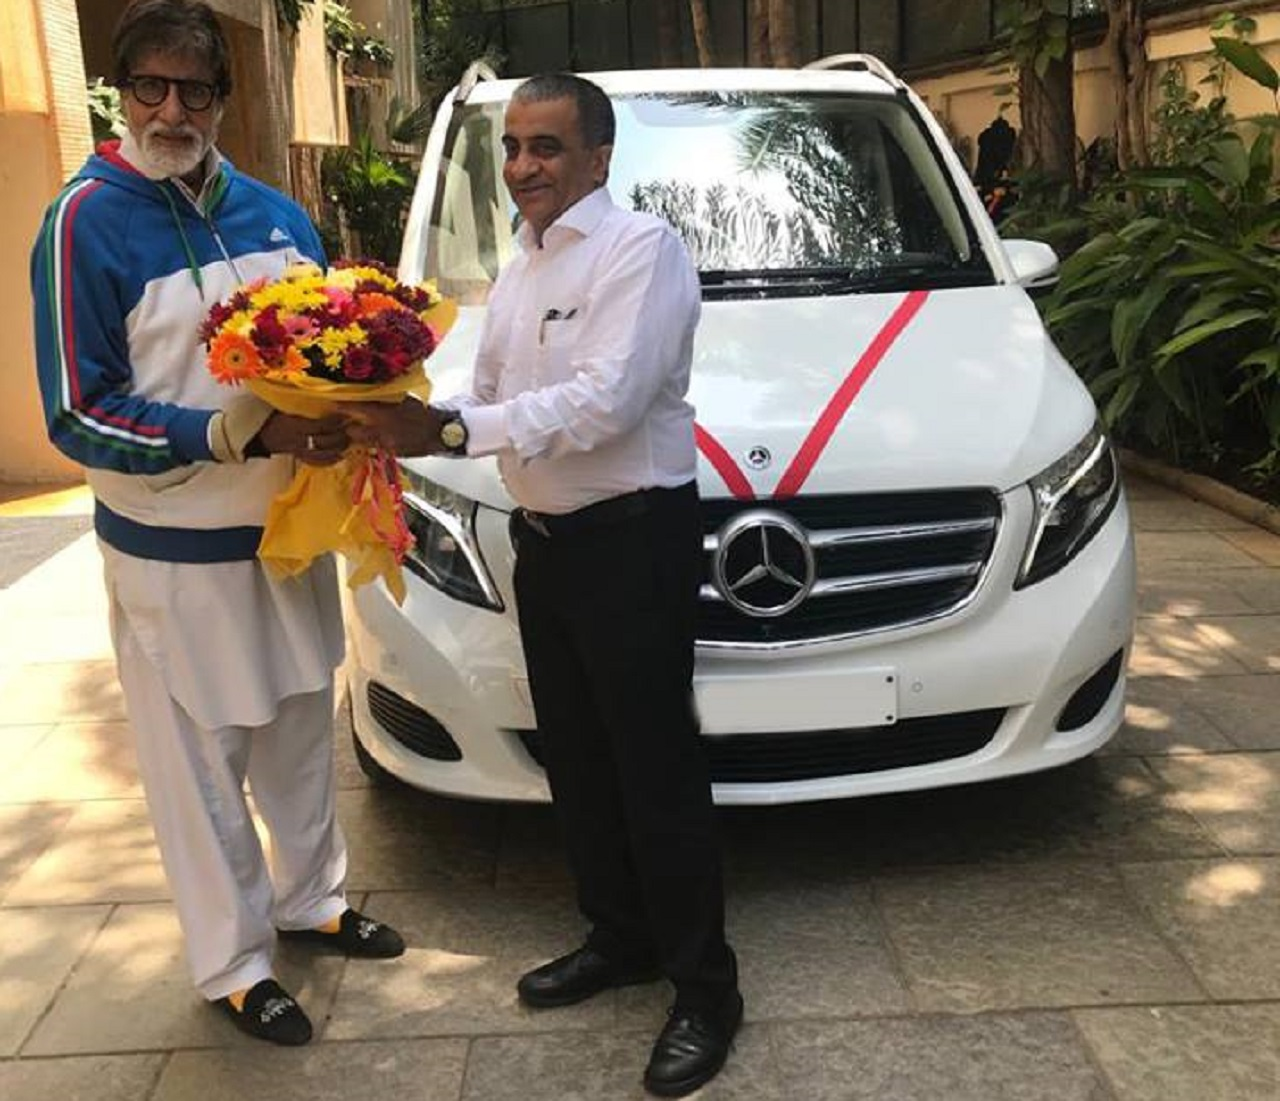 Bollywood superstar Amitabh Bachchan recently purchased a Mercedes-Benz V-Class MPV from Auto Hangar dealership in Mumbai. The car carries a price tag of Rs. 81.9 lakh (ex-showroom) and it is rather an unusual choice as most Indian celebrities buy a luxury sedan or SUV. (Image: Auto Hangar Mercedes-Benz/Facebook)